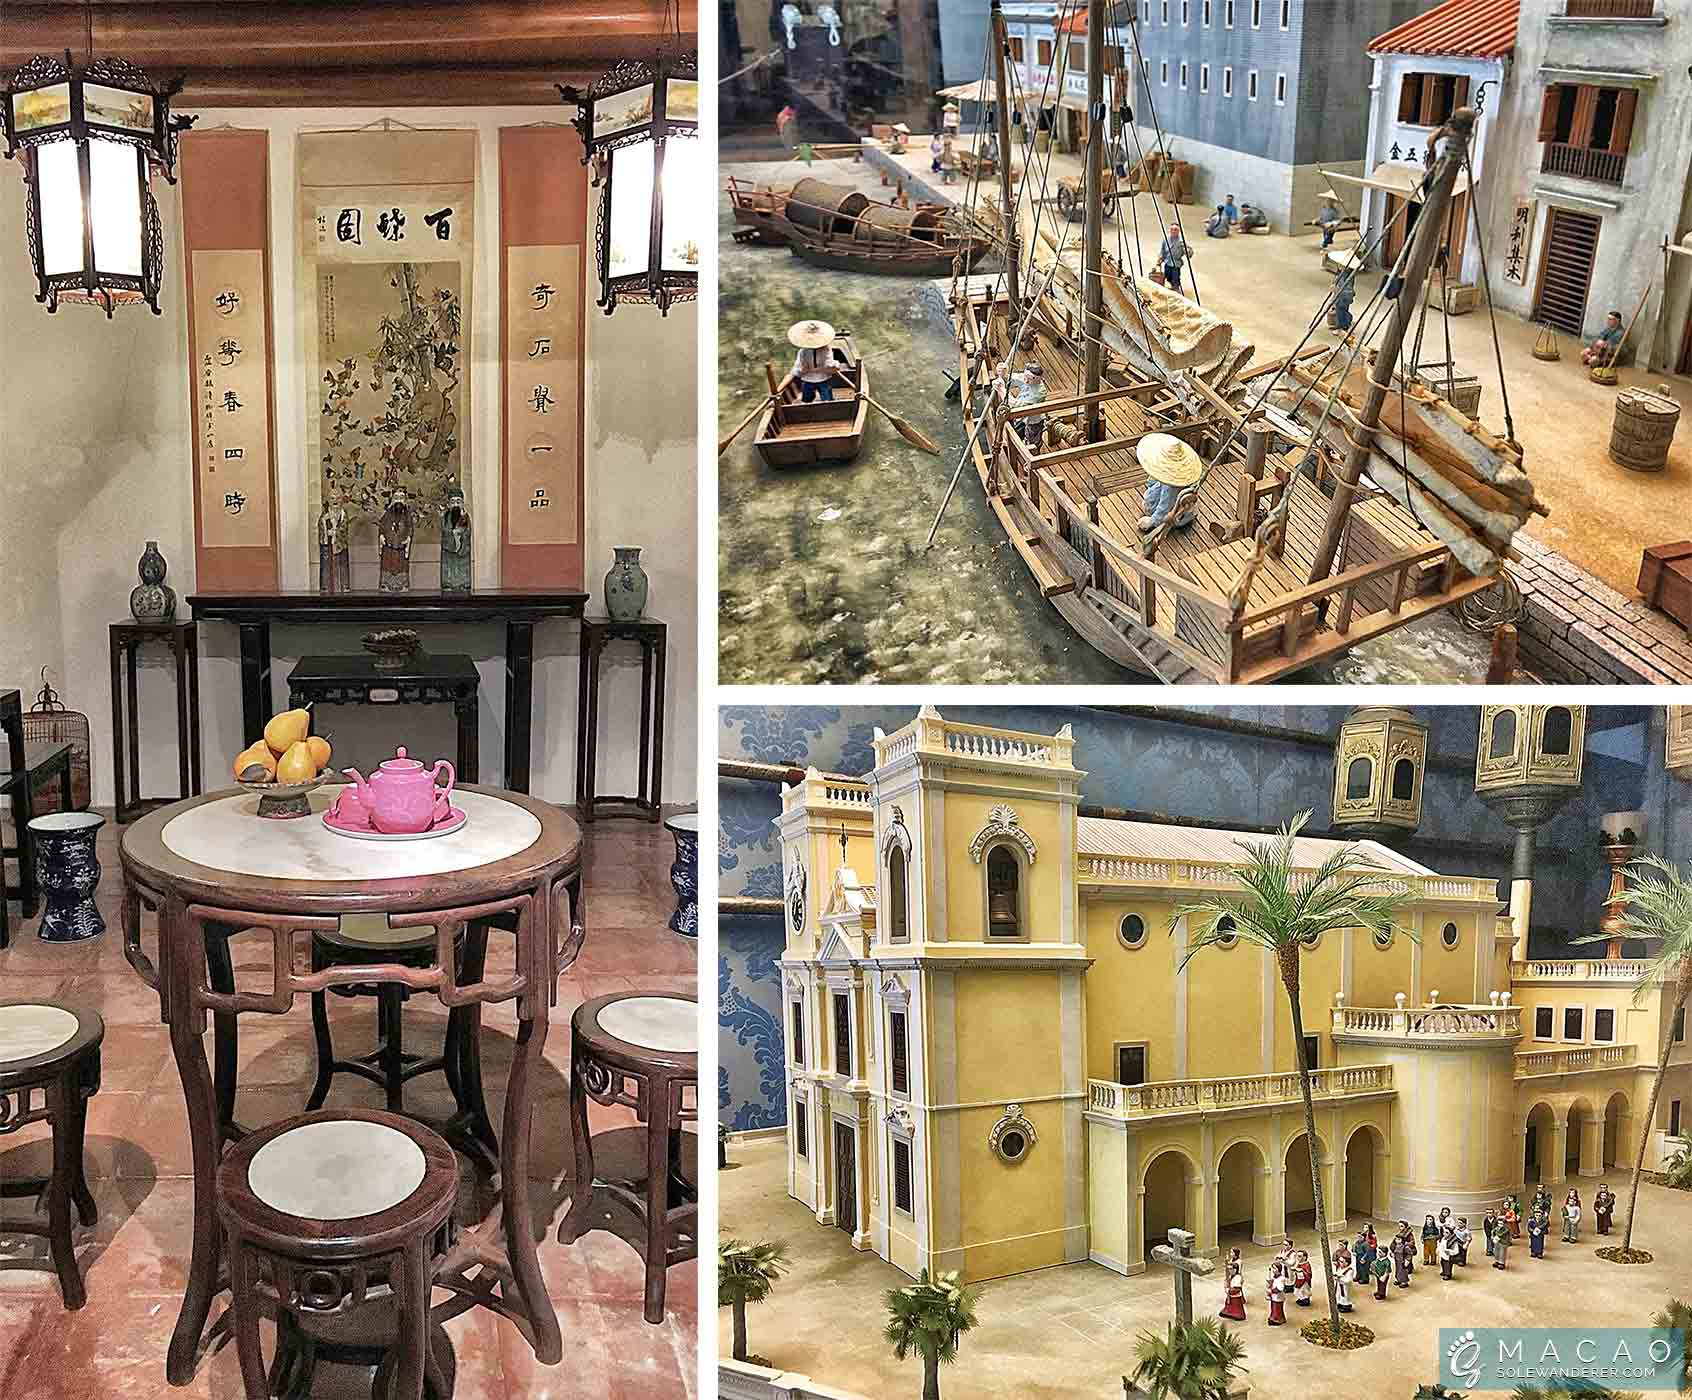 Museu De Macao Exhibitions